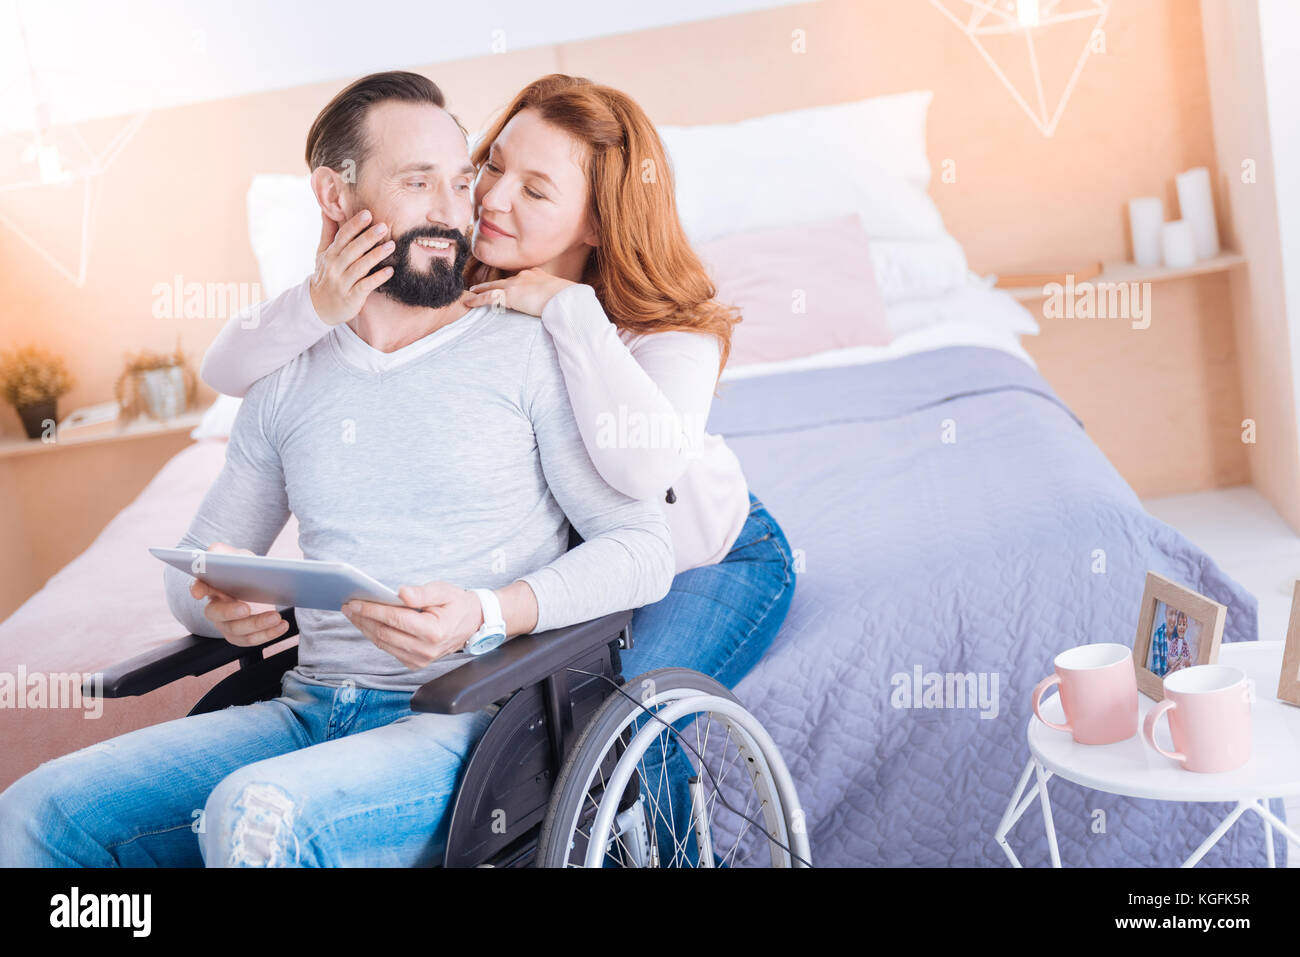 Inspired woman caressing a crippled man - Stock Image